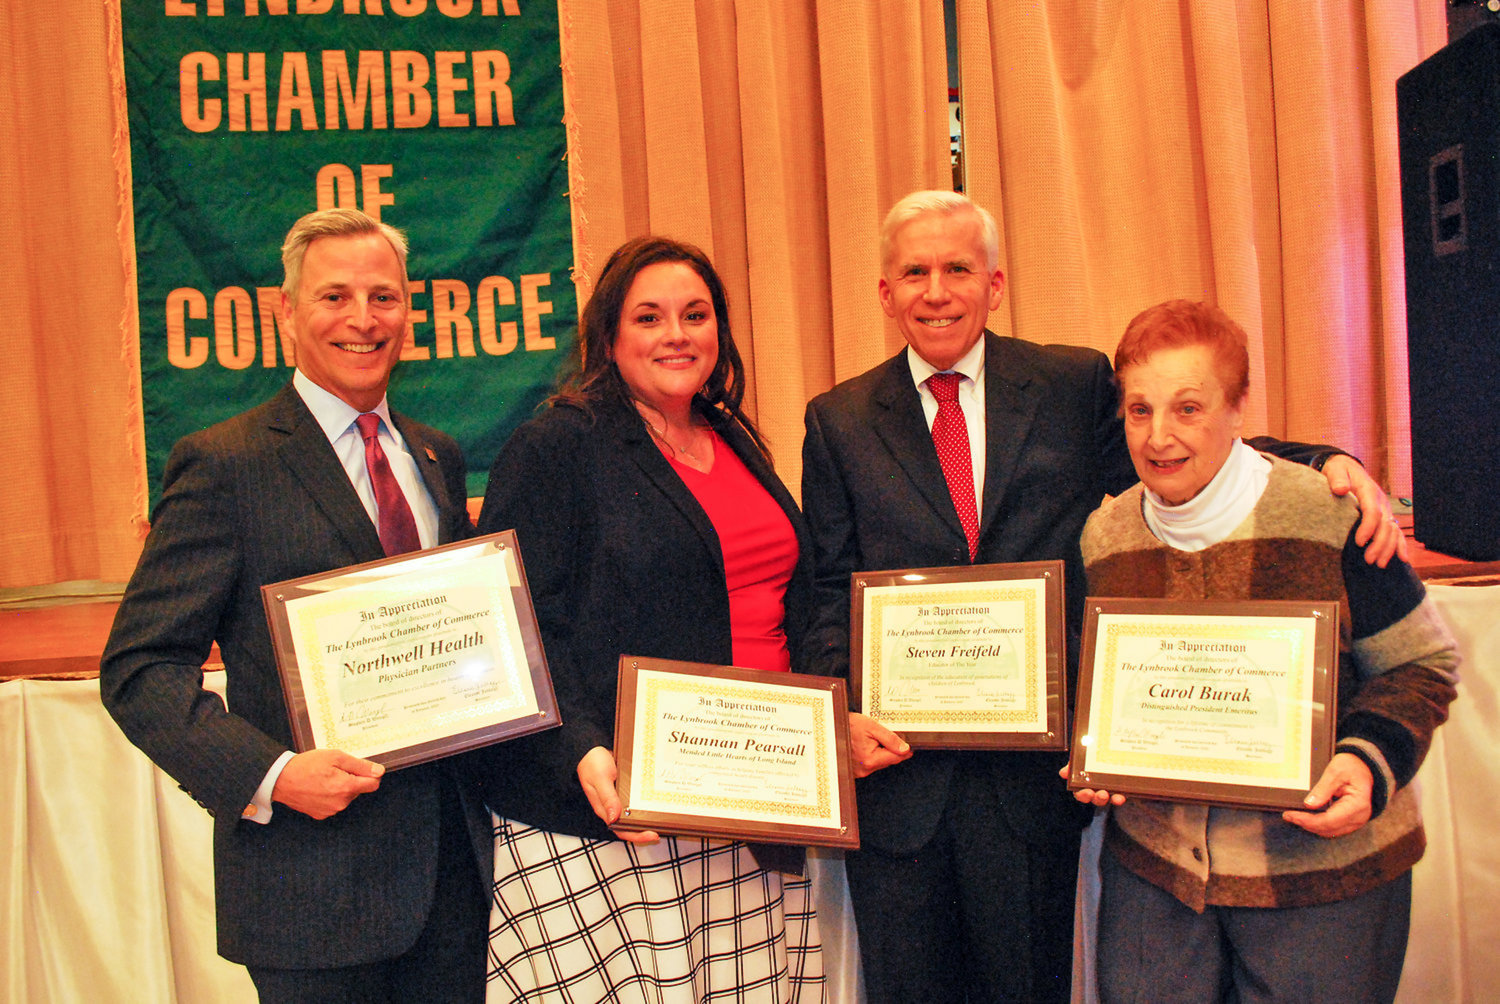 The Lynbrook Chamber of Commerce hosted its annual Evening of Excellence dinner on Jan. 30, at which it honored community leaders and installed officers. Honorees included, from left, Ira Nash, of Northwell Health Physician Partners; Shannan Pearsall, of Mended Little Hearts of Long Island; Steve Freifeld, a Marion Street School teacher; and Carol Burak, a former chamber president.